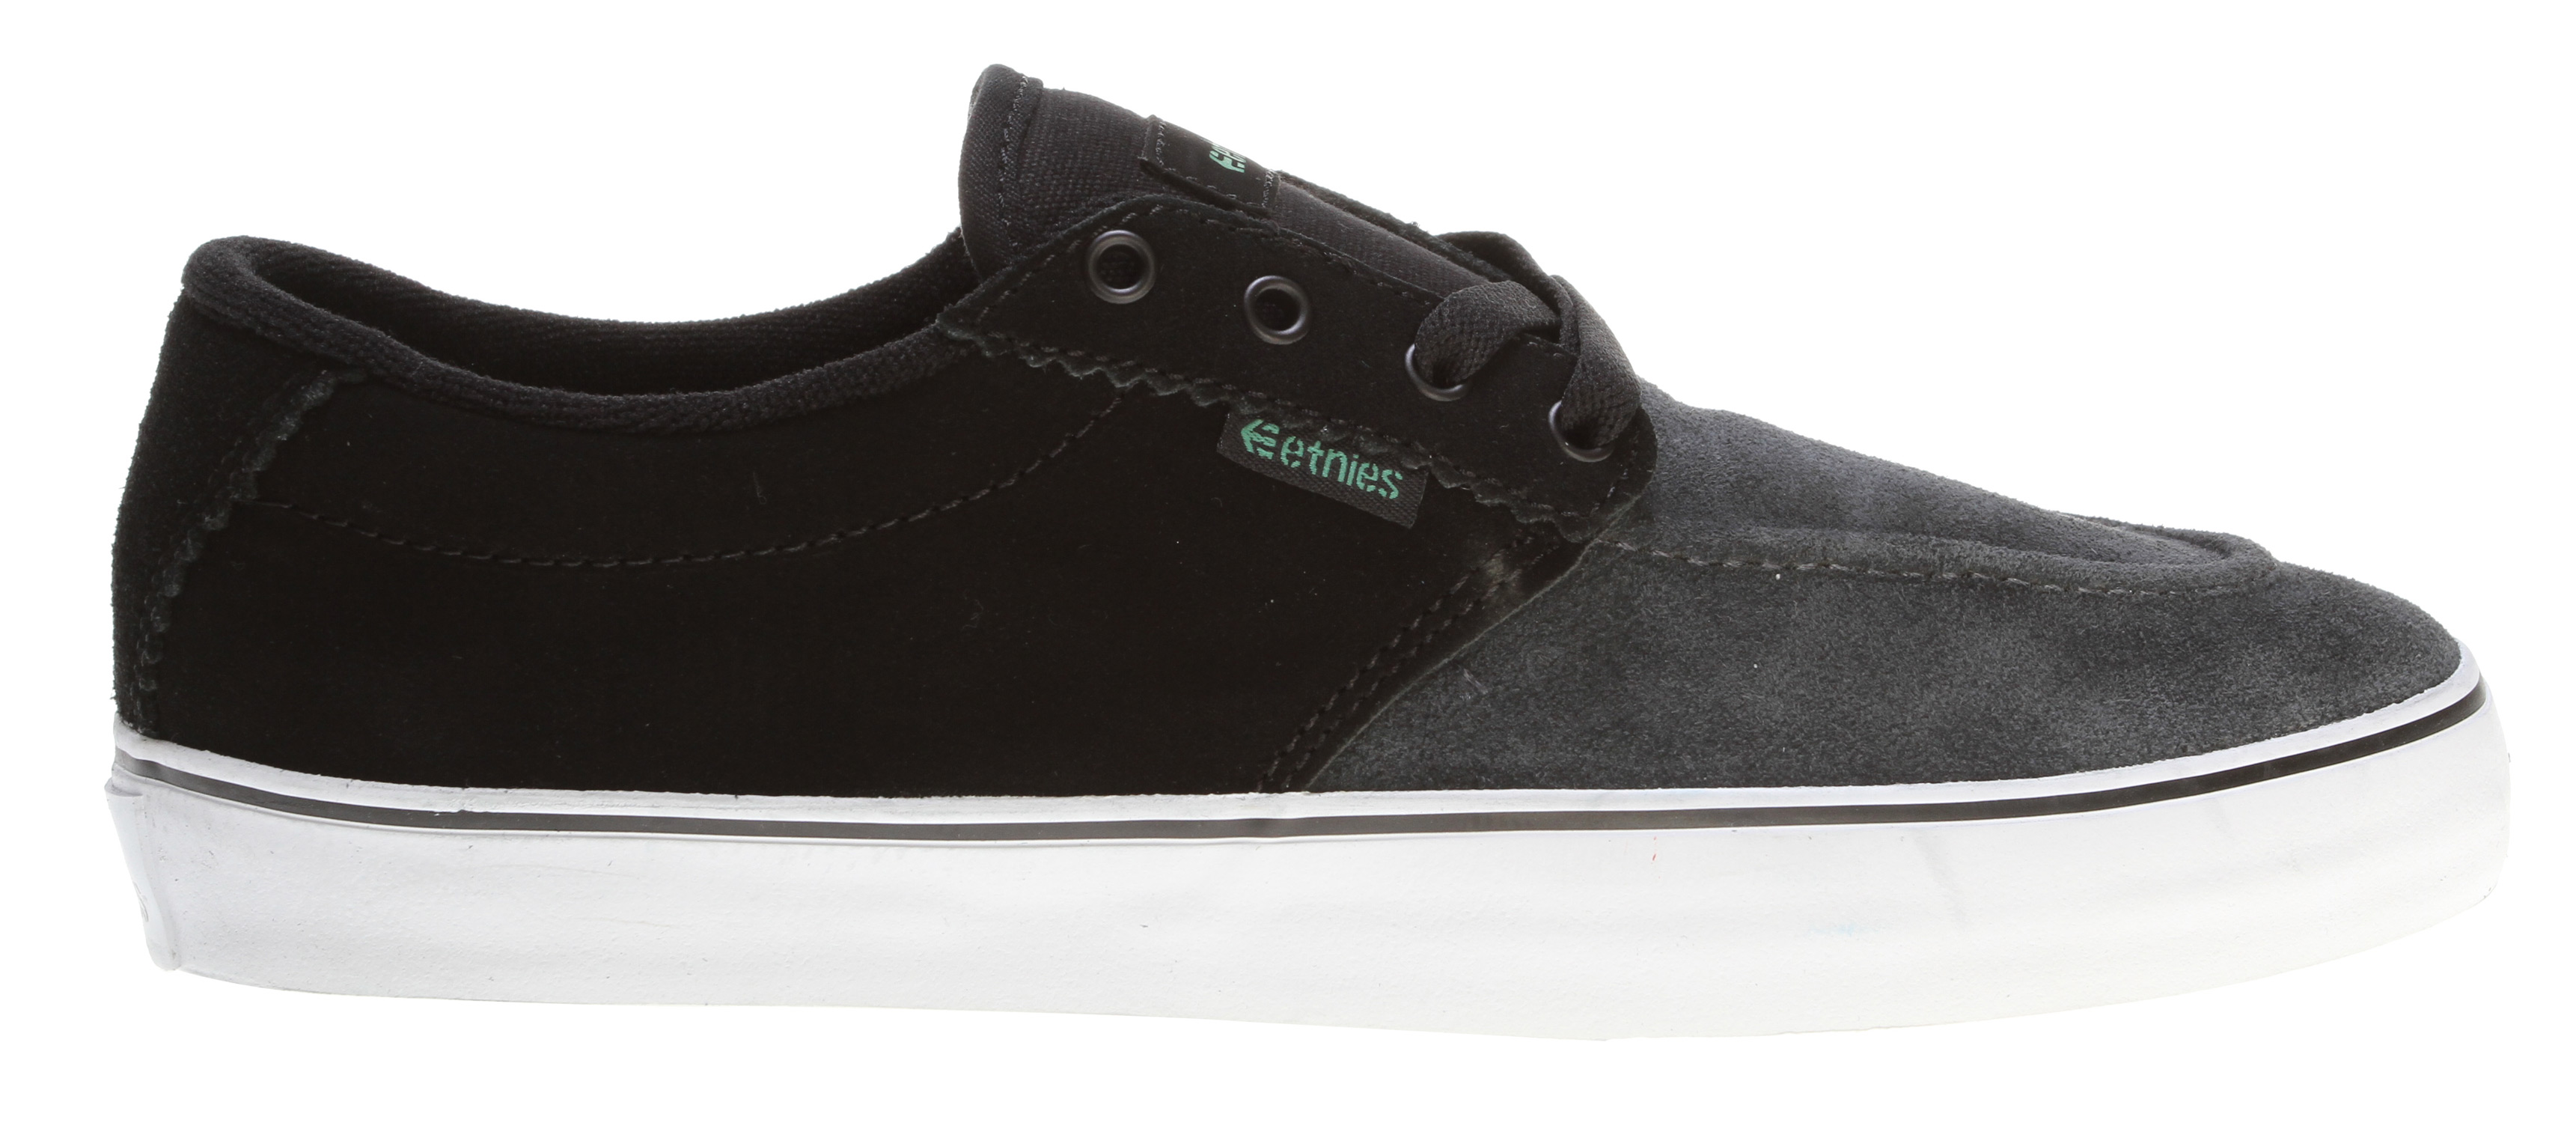 Skateboard Key Features of the Etnies Jameson 2.5 Skate Shoes: Deconstructed styling Vulcanized construction Thin padded tongue and collar STI Foam Lite 1 footbed 400 NBS rubber outsole - $41.95